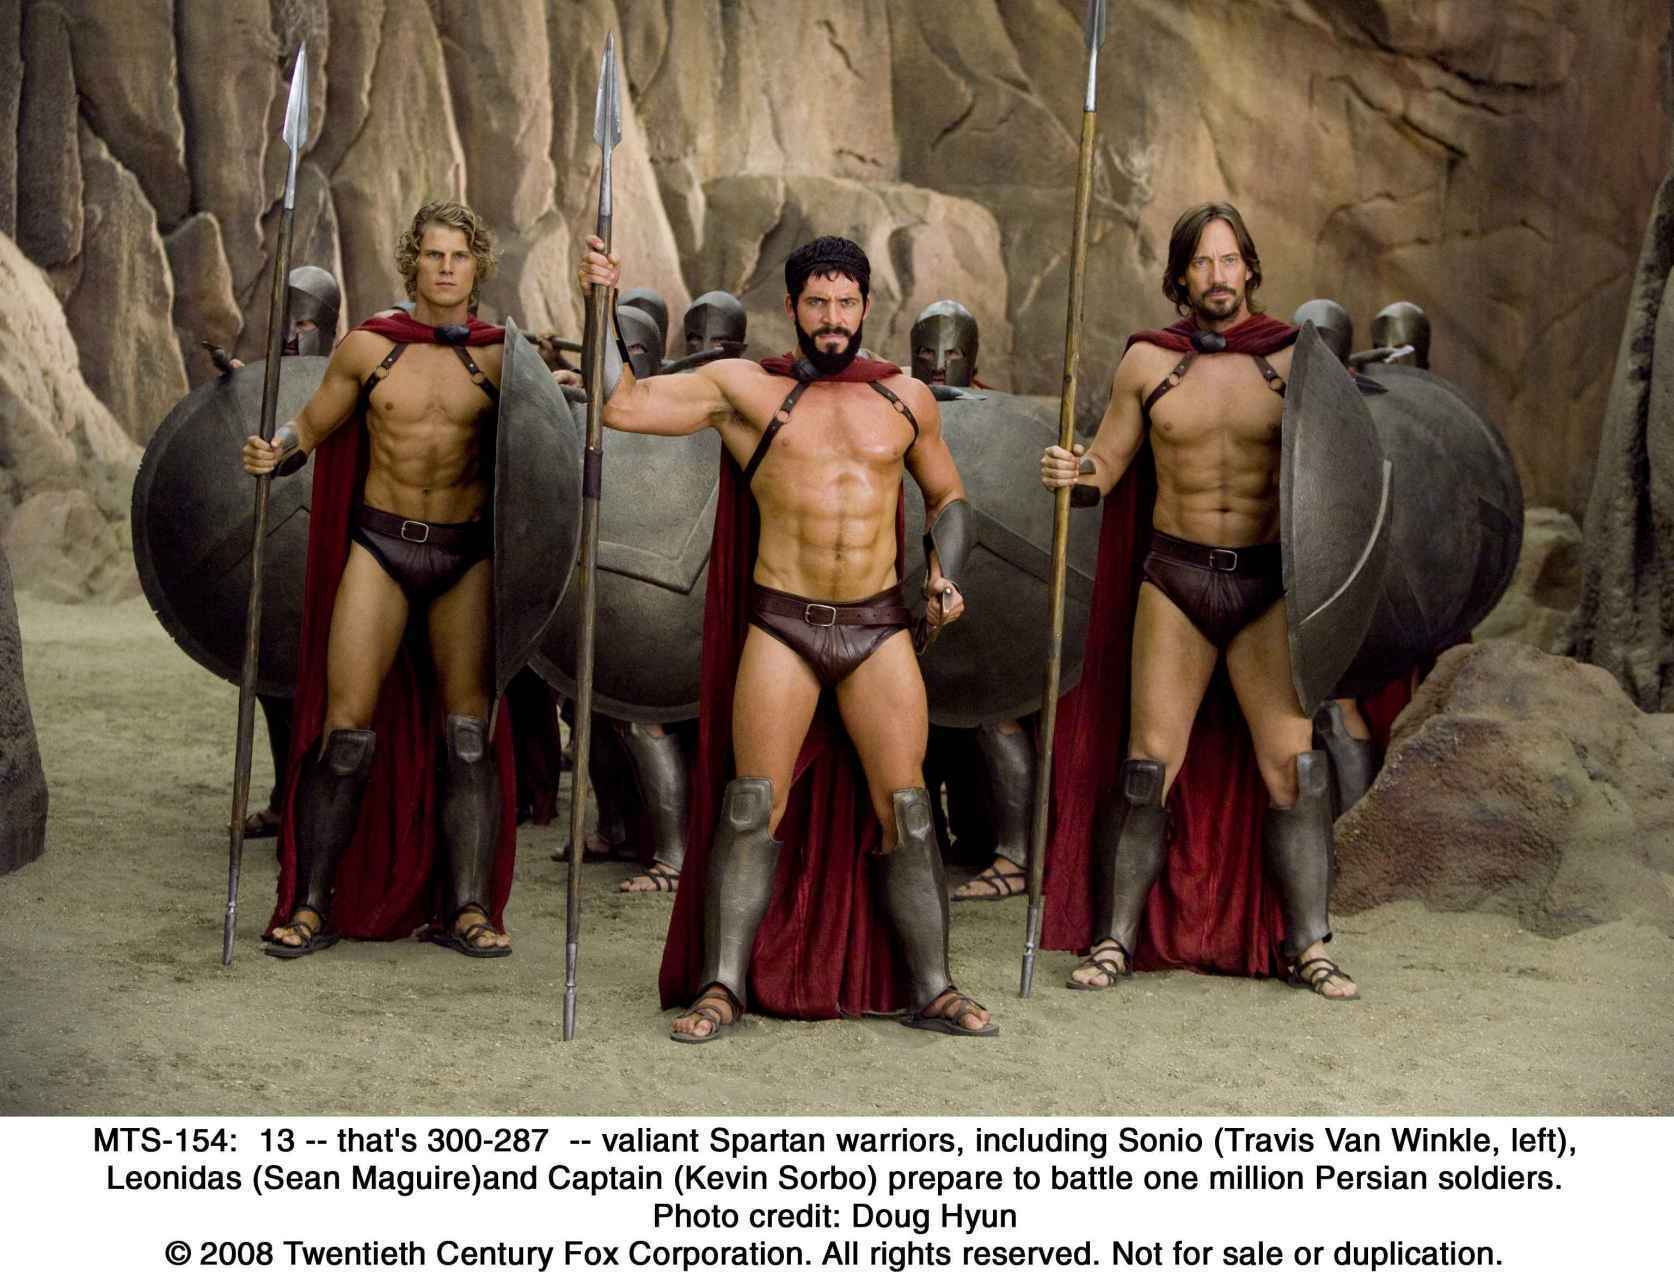 Meet the Spartans - Movies Photo (10232546) - Fanpop